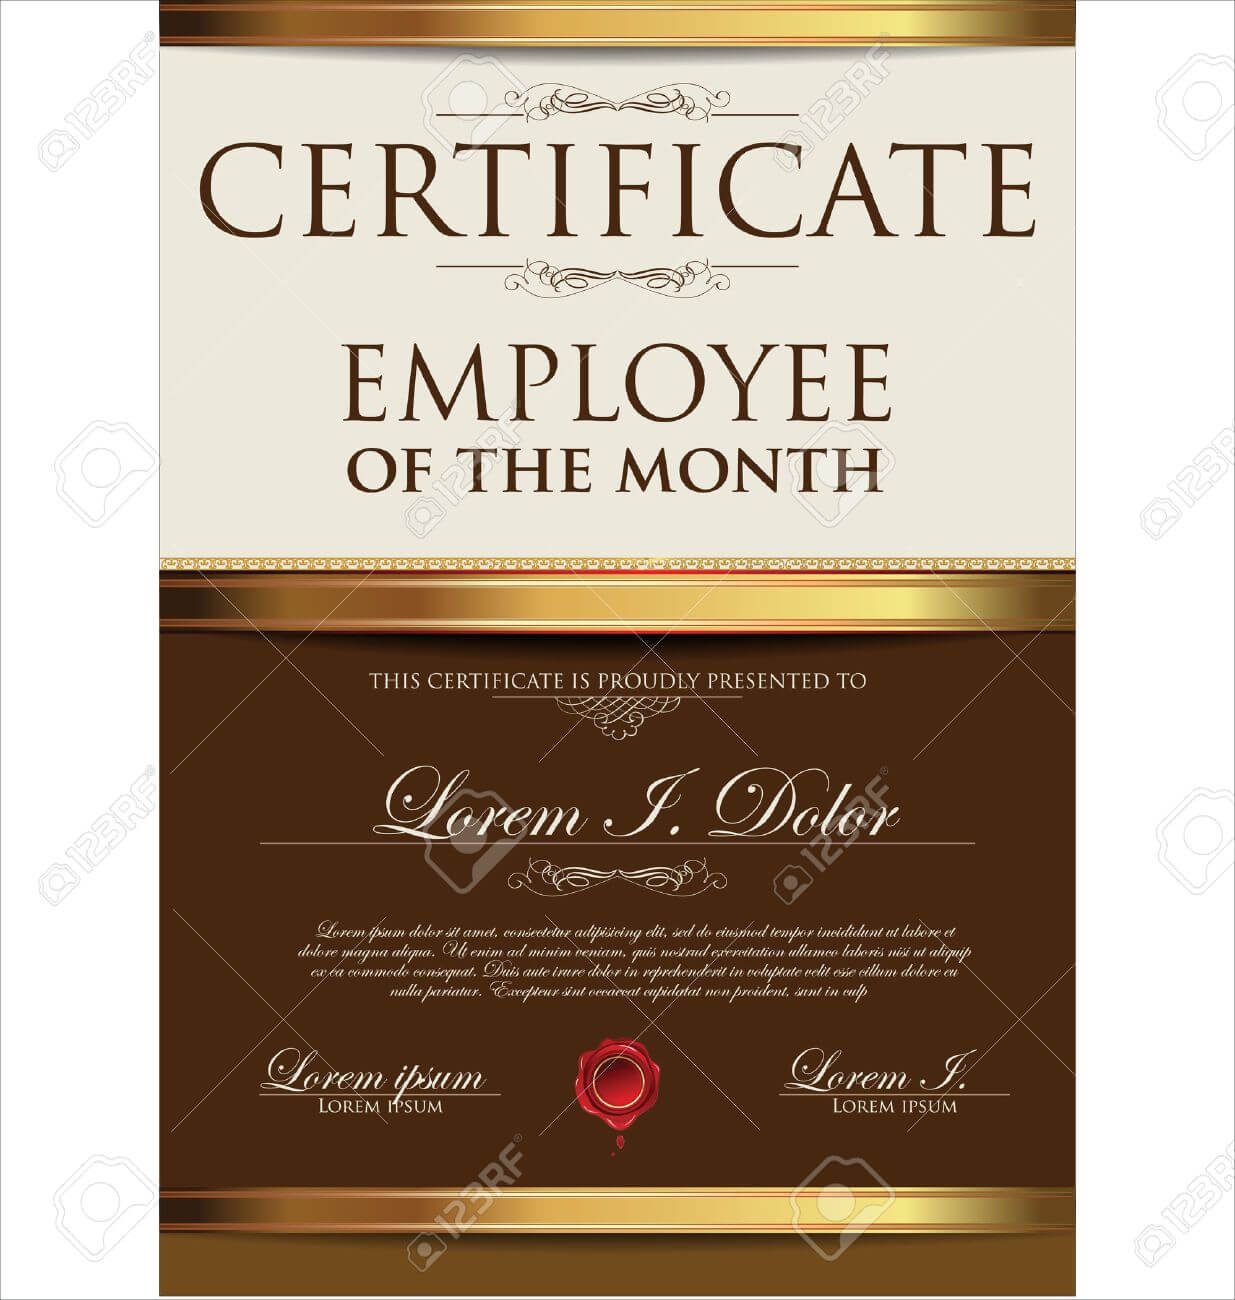 Certificate Template, Employee Of The Month Throughout Manager Of The Month Certificate Template